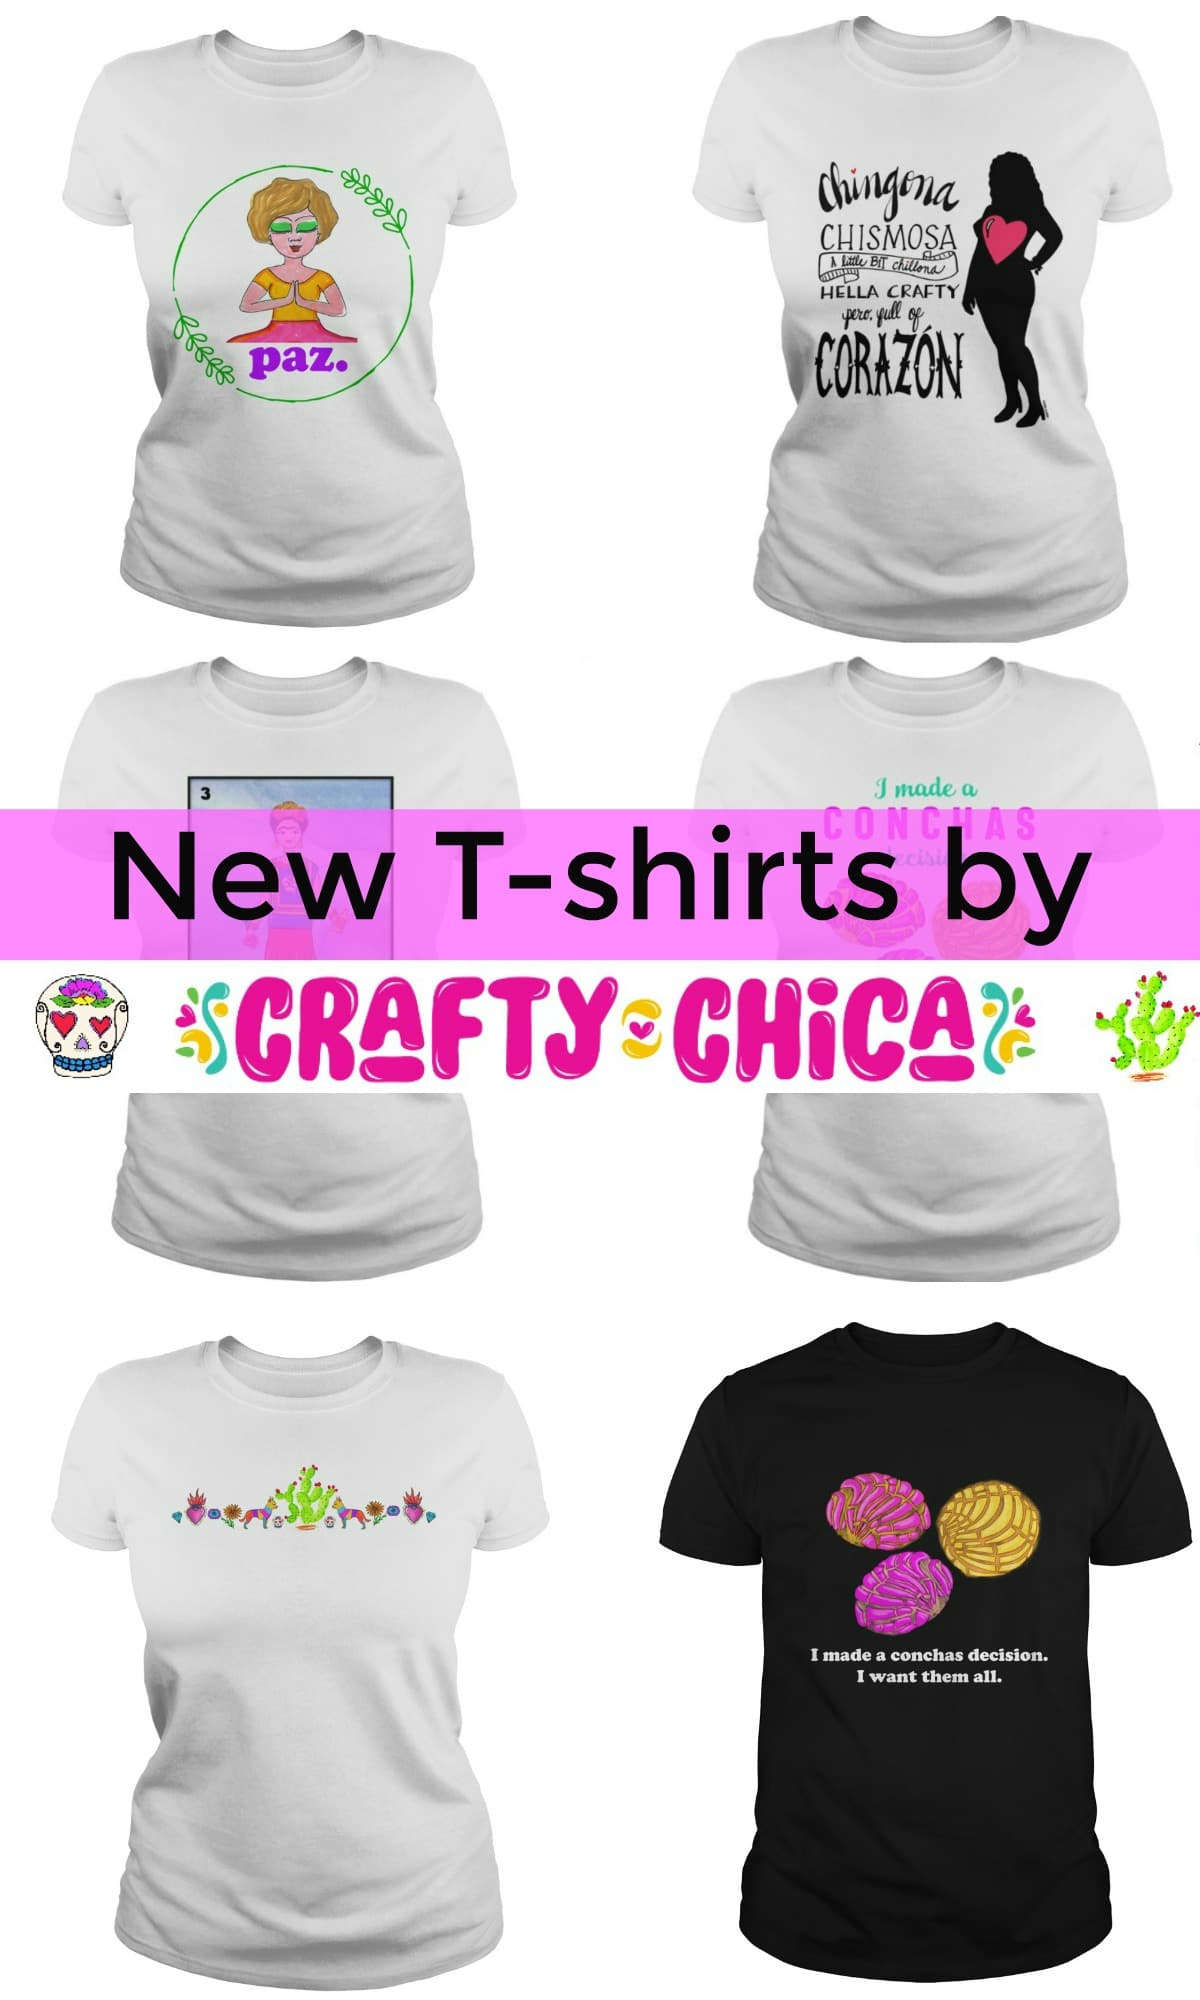 Crafty Chica t-shirts